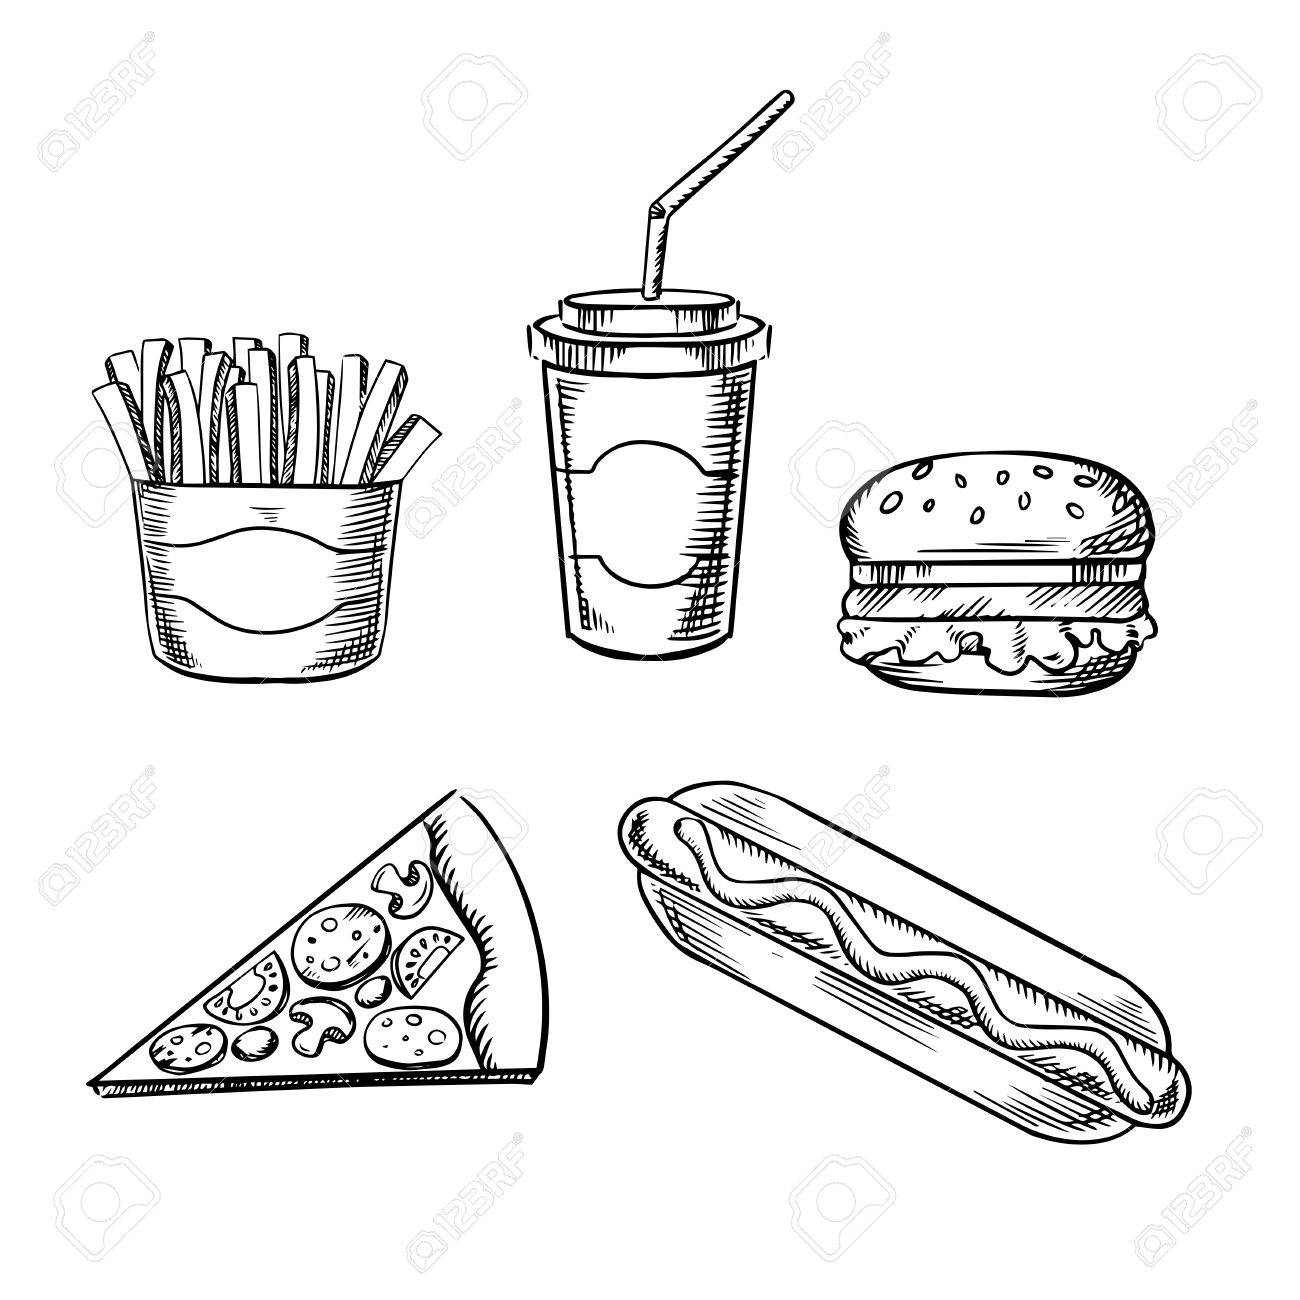 1300x1300 Fast Food Sketches With Hamburger, Slice Of Pizza, French Fries